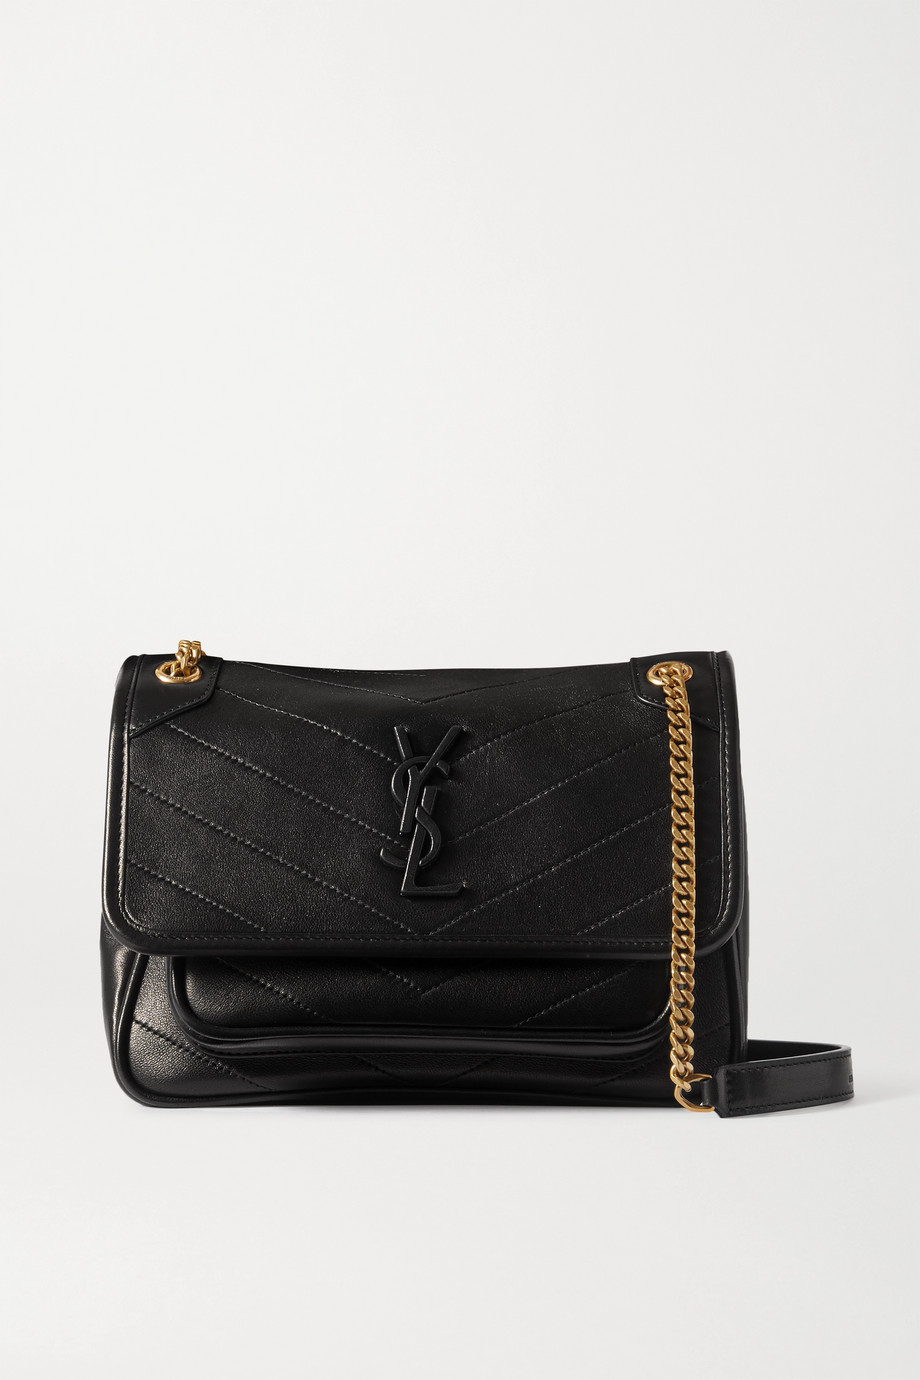 SAINT LAURENT Niki mini quilted leather shoulder bag